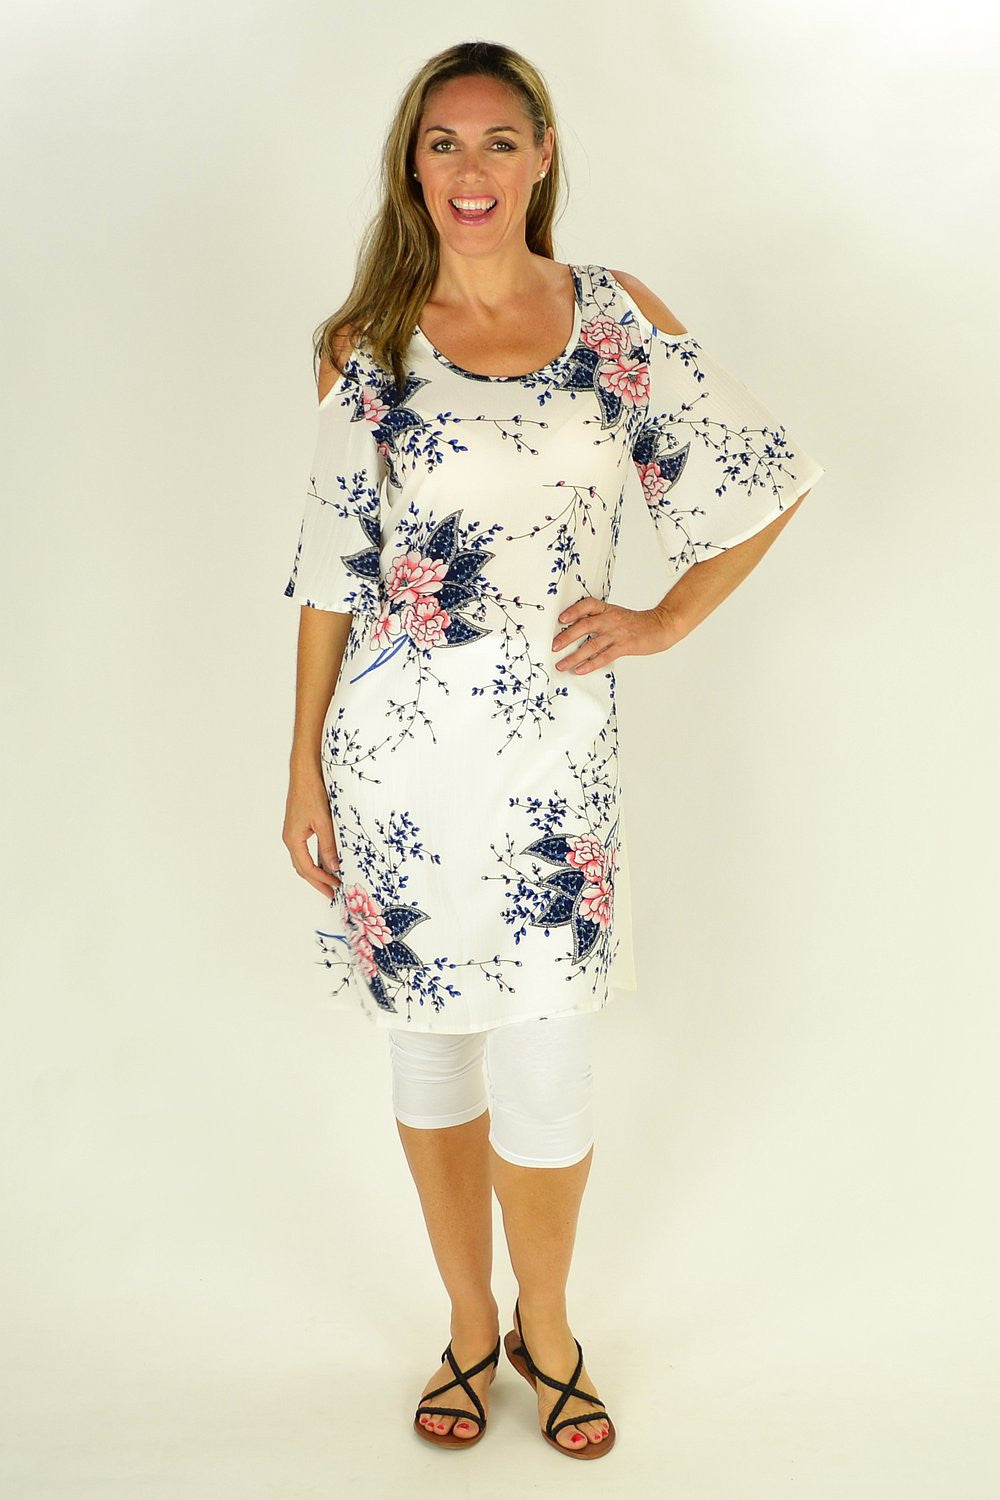 White Flower Tree Tunic - at I Love Tunics @ www.ilovetunics.com = Number One! Tunics Destination